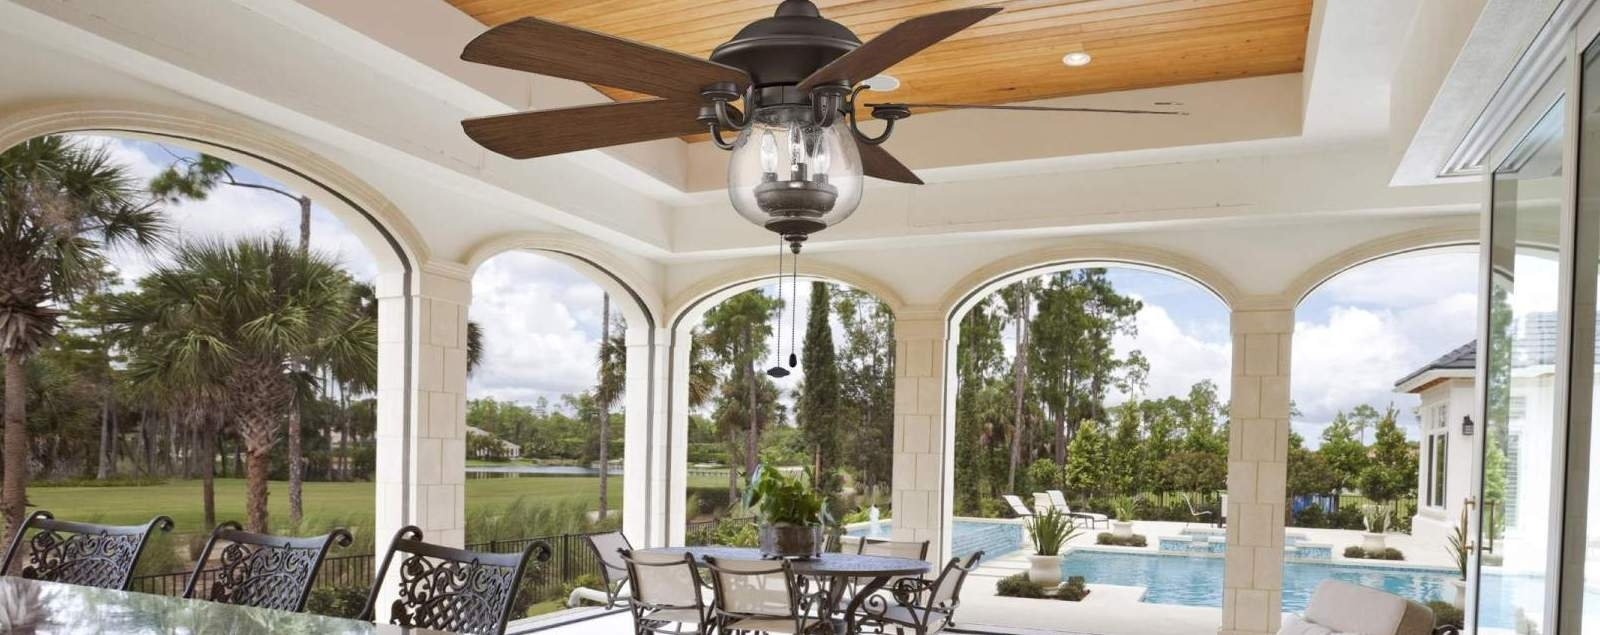 Outdoor Ceiling Fans – Shop Wet, Dry, And Damp Rated Outdoor Fans Throughout Current Outdoor Ceiling Fans With Remote (View 14 of 20)